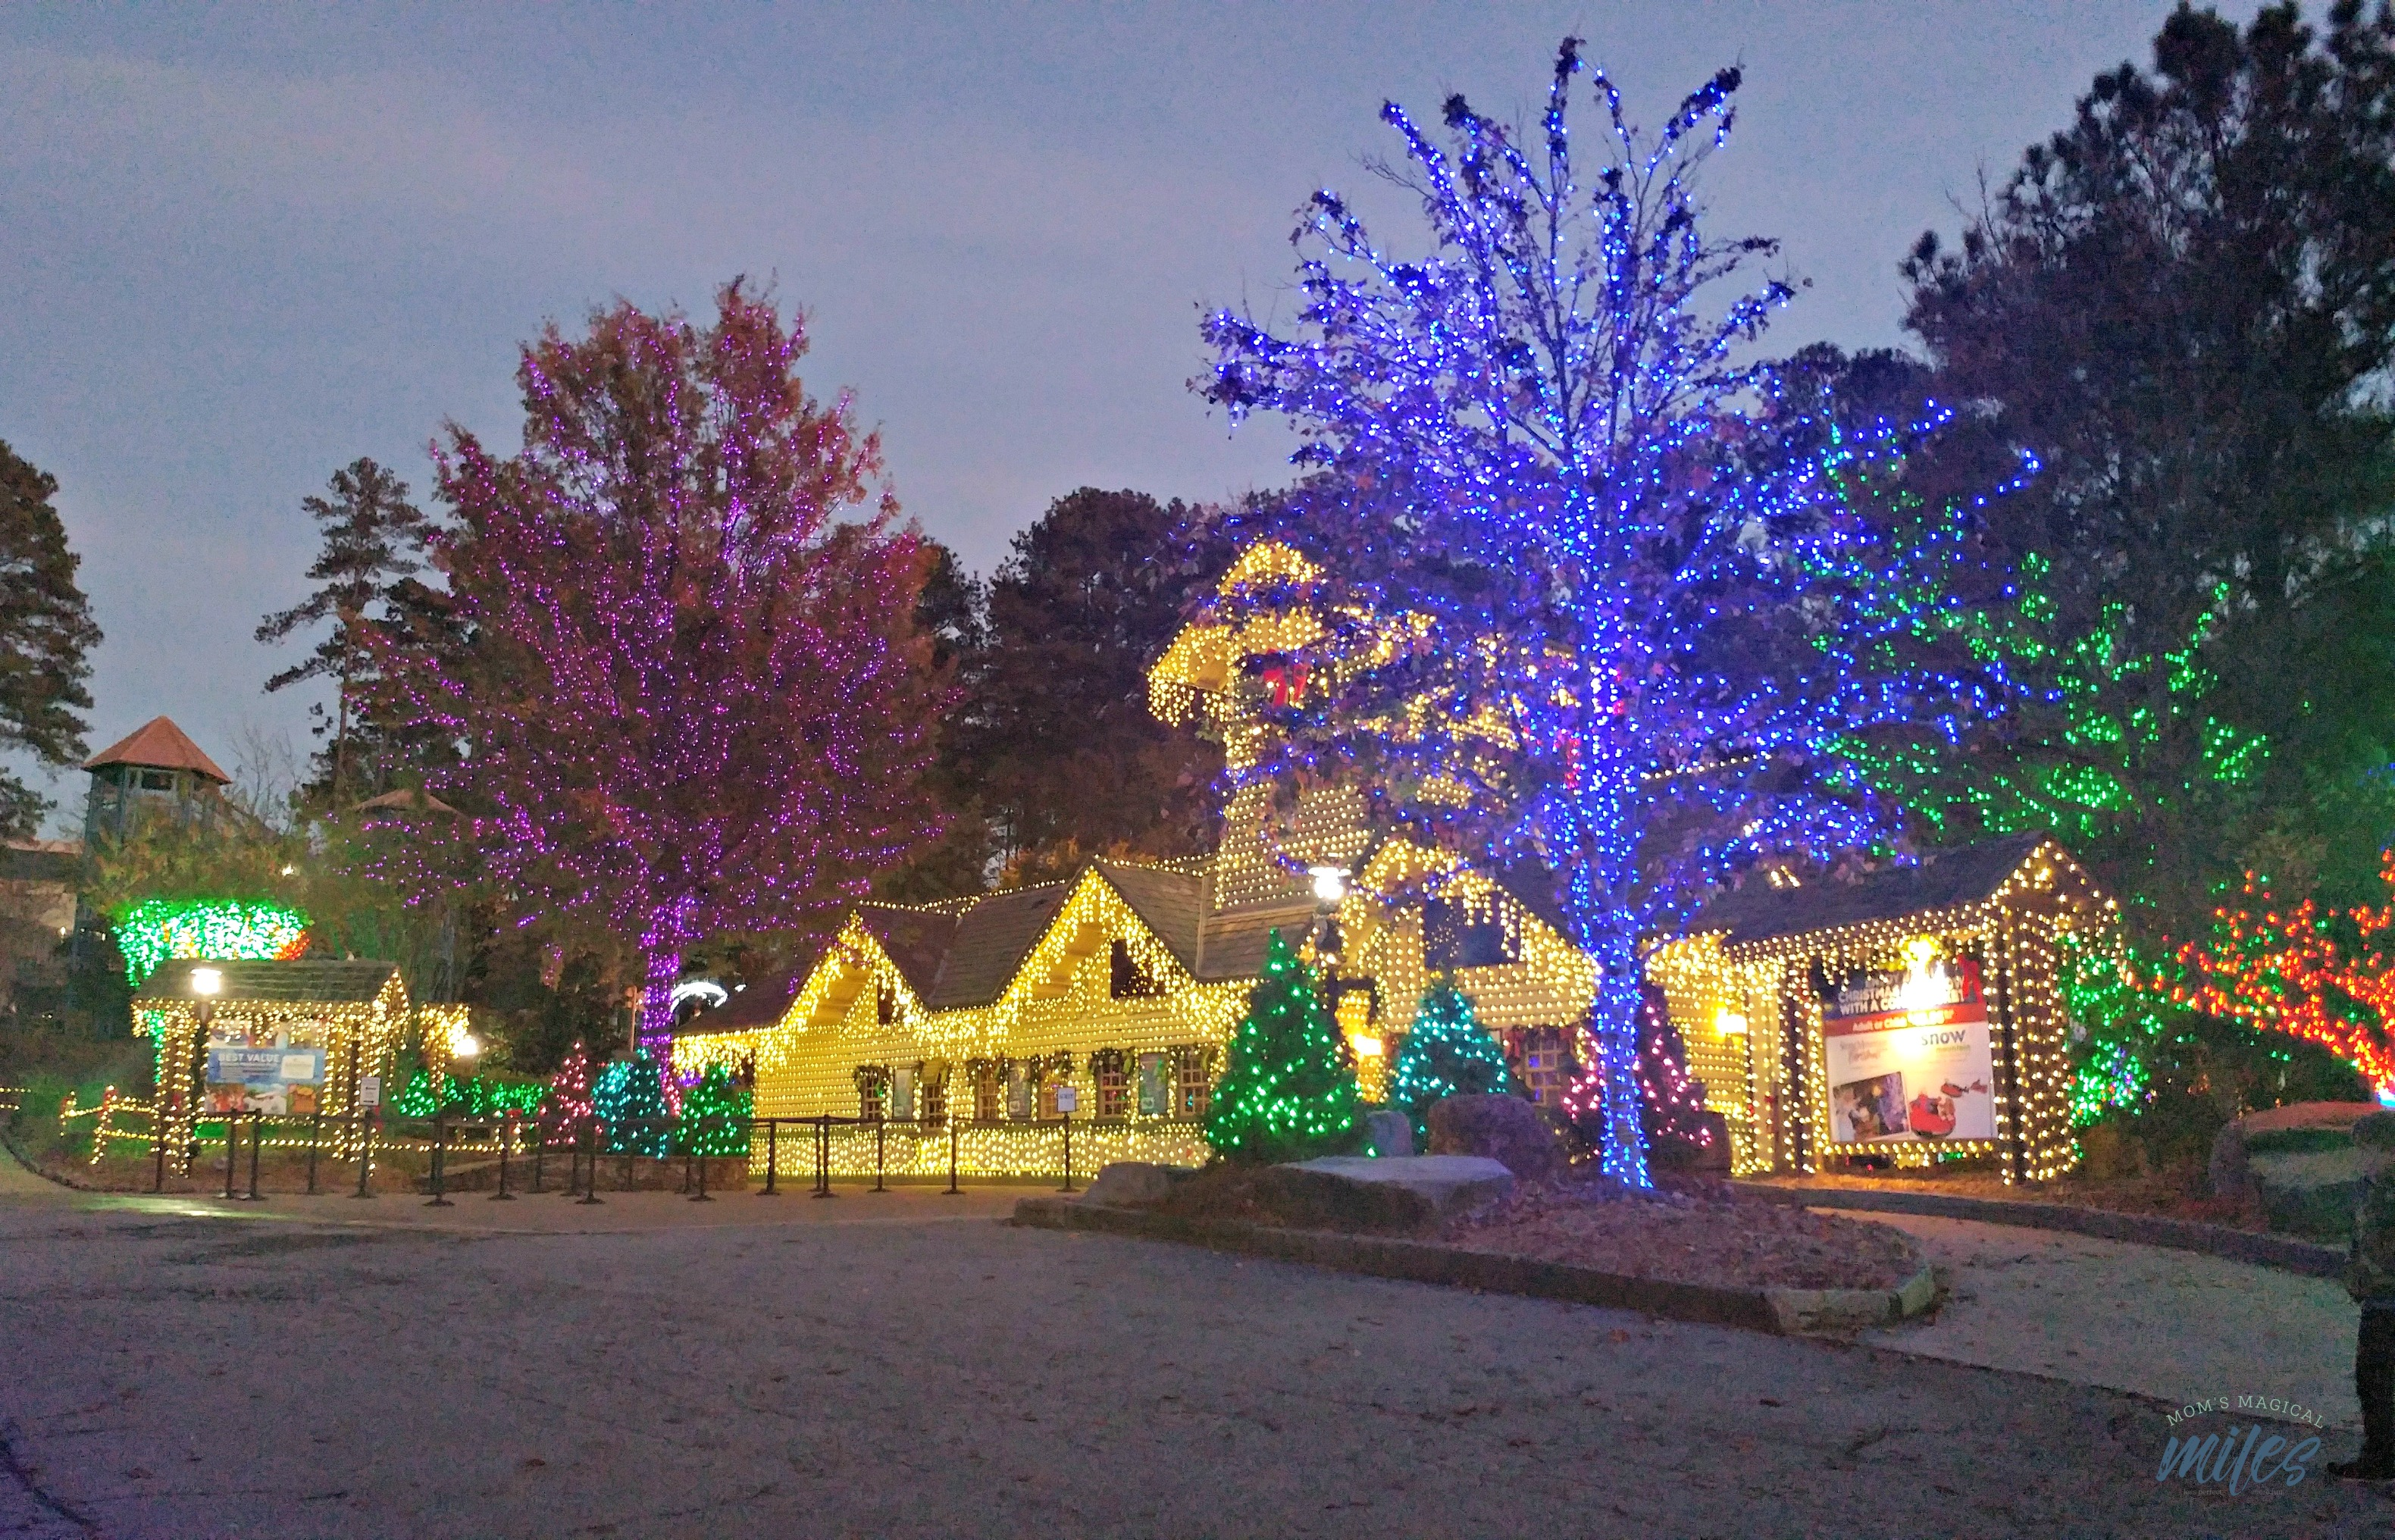 You are filled with the Stone Mountain Christmas spirit as soon as you pull in the parking lot!